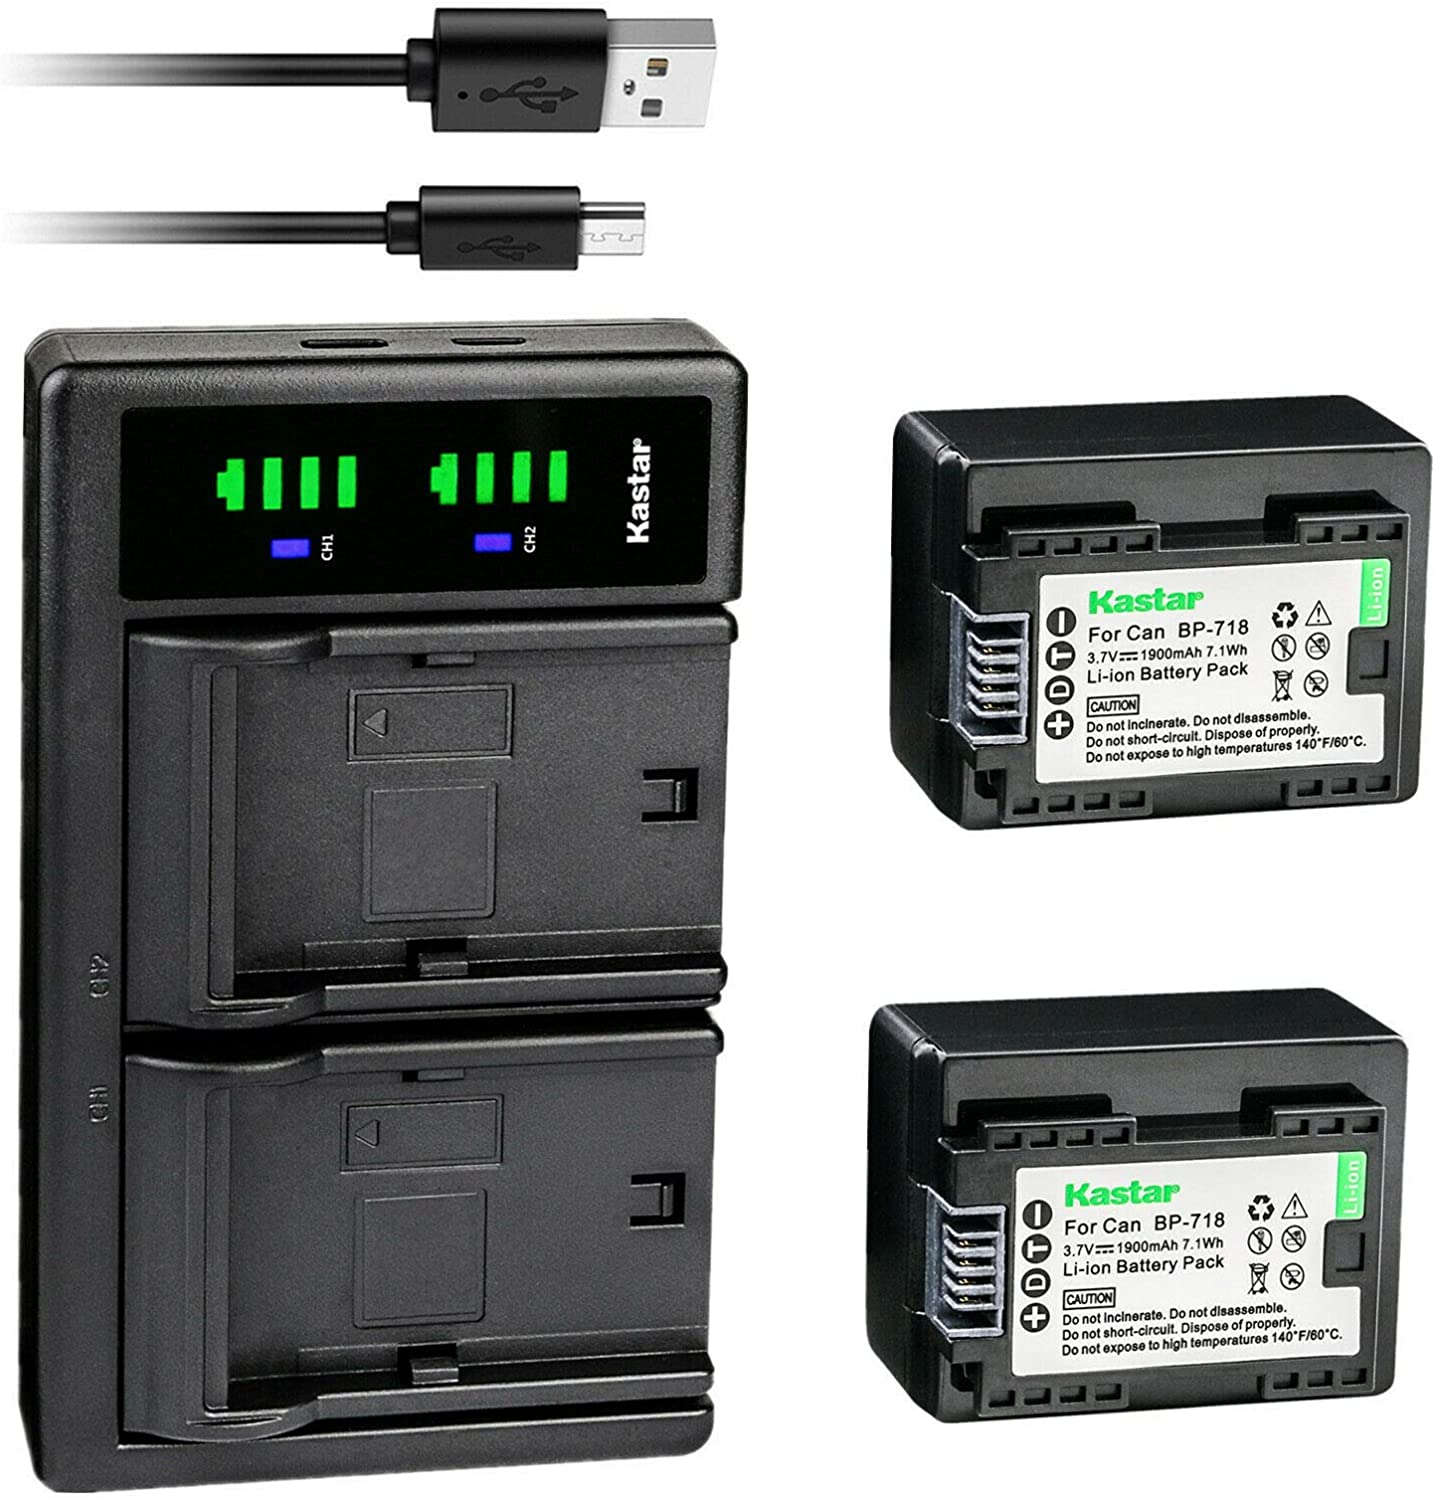 Luxury Kastar 2-Pack Battery and LTD2 for Charger Save money Canon USB Replacement